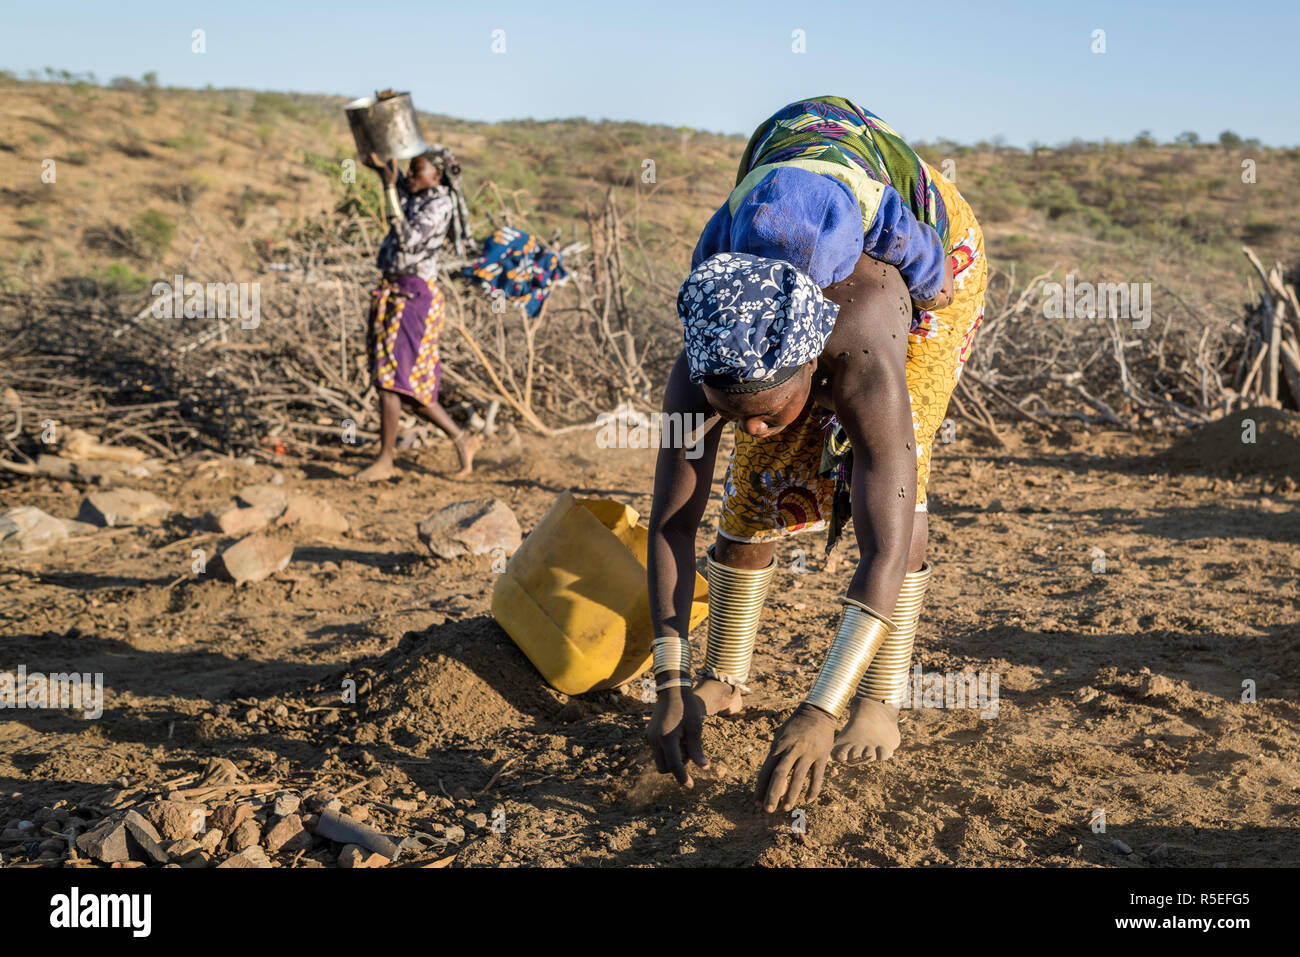 Mucubale women working in the field collecting sheep dung to use it as fertiliser. One of them carry her baby on her back while working. - Stock Image